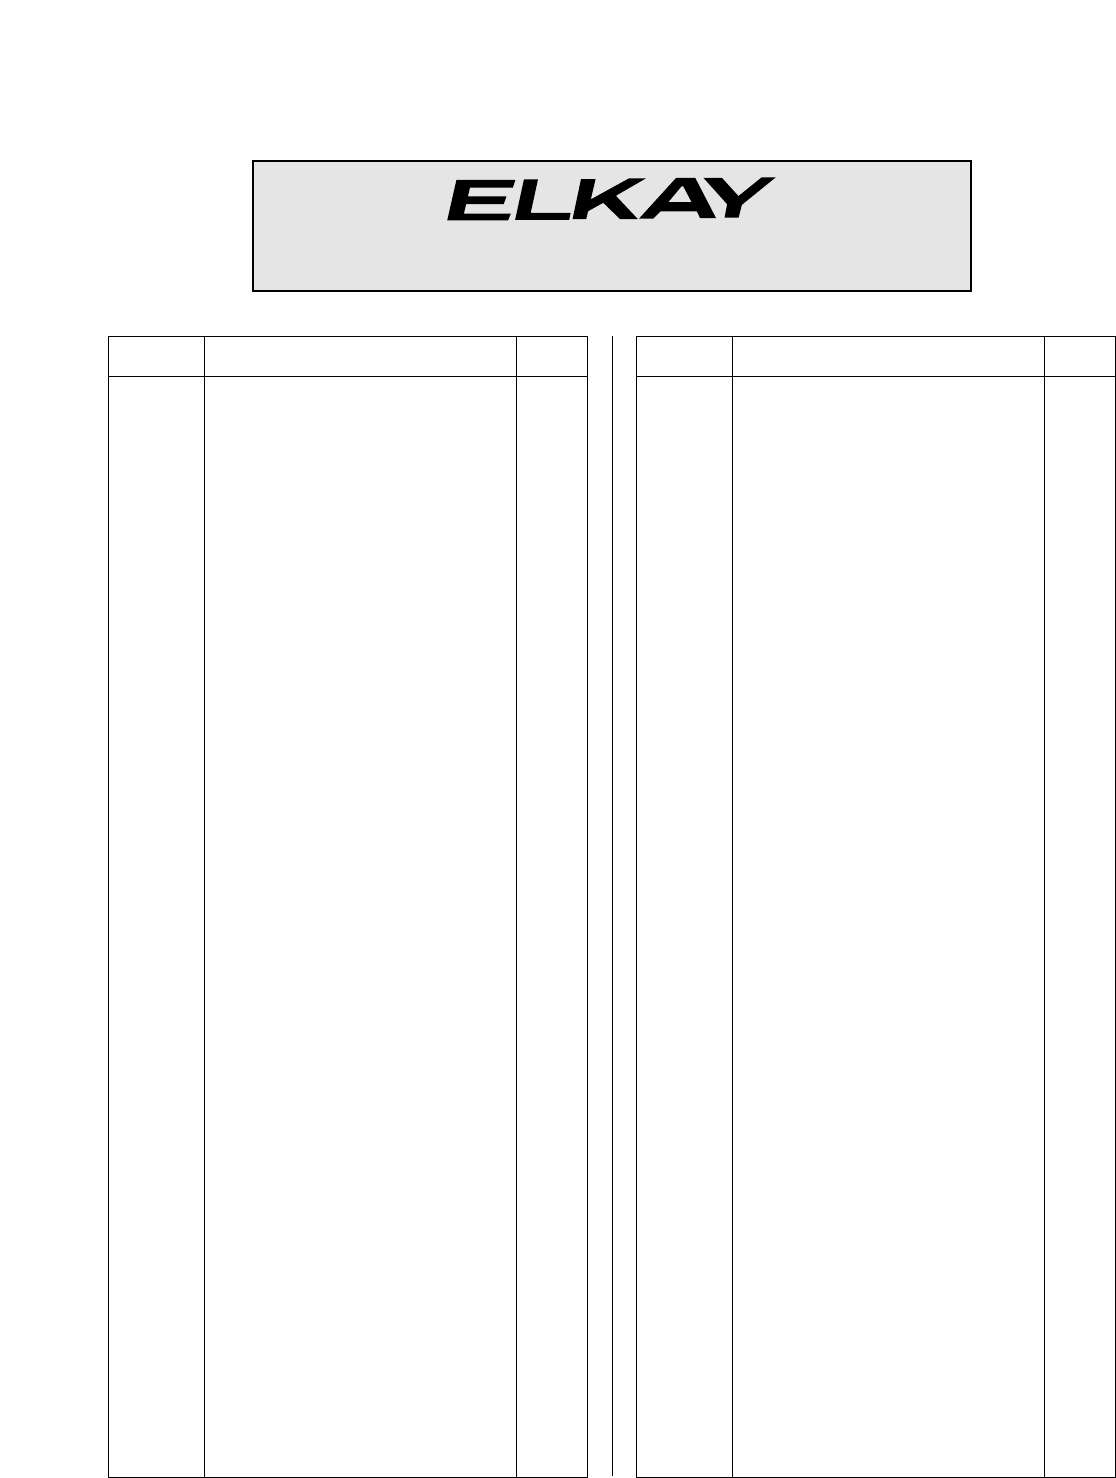 Replacement Cartridge Elkay A55503R